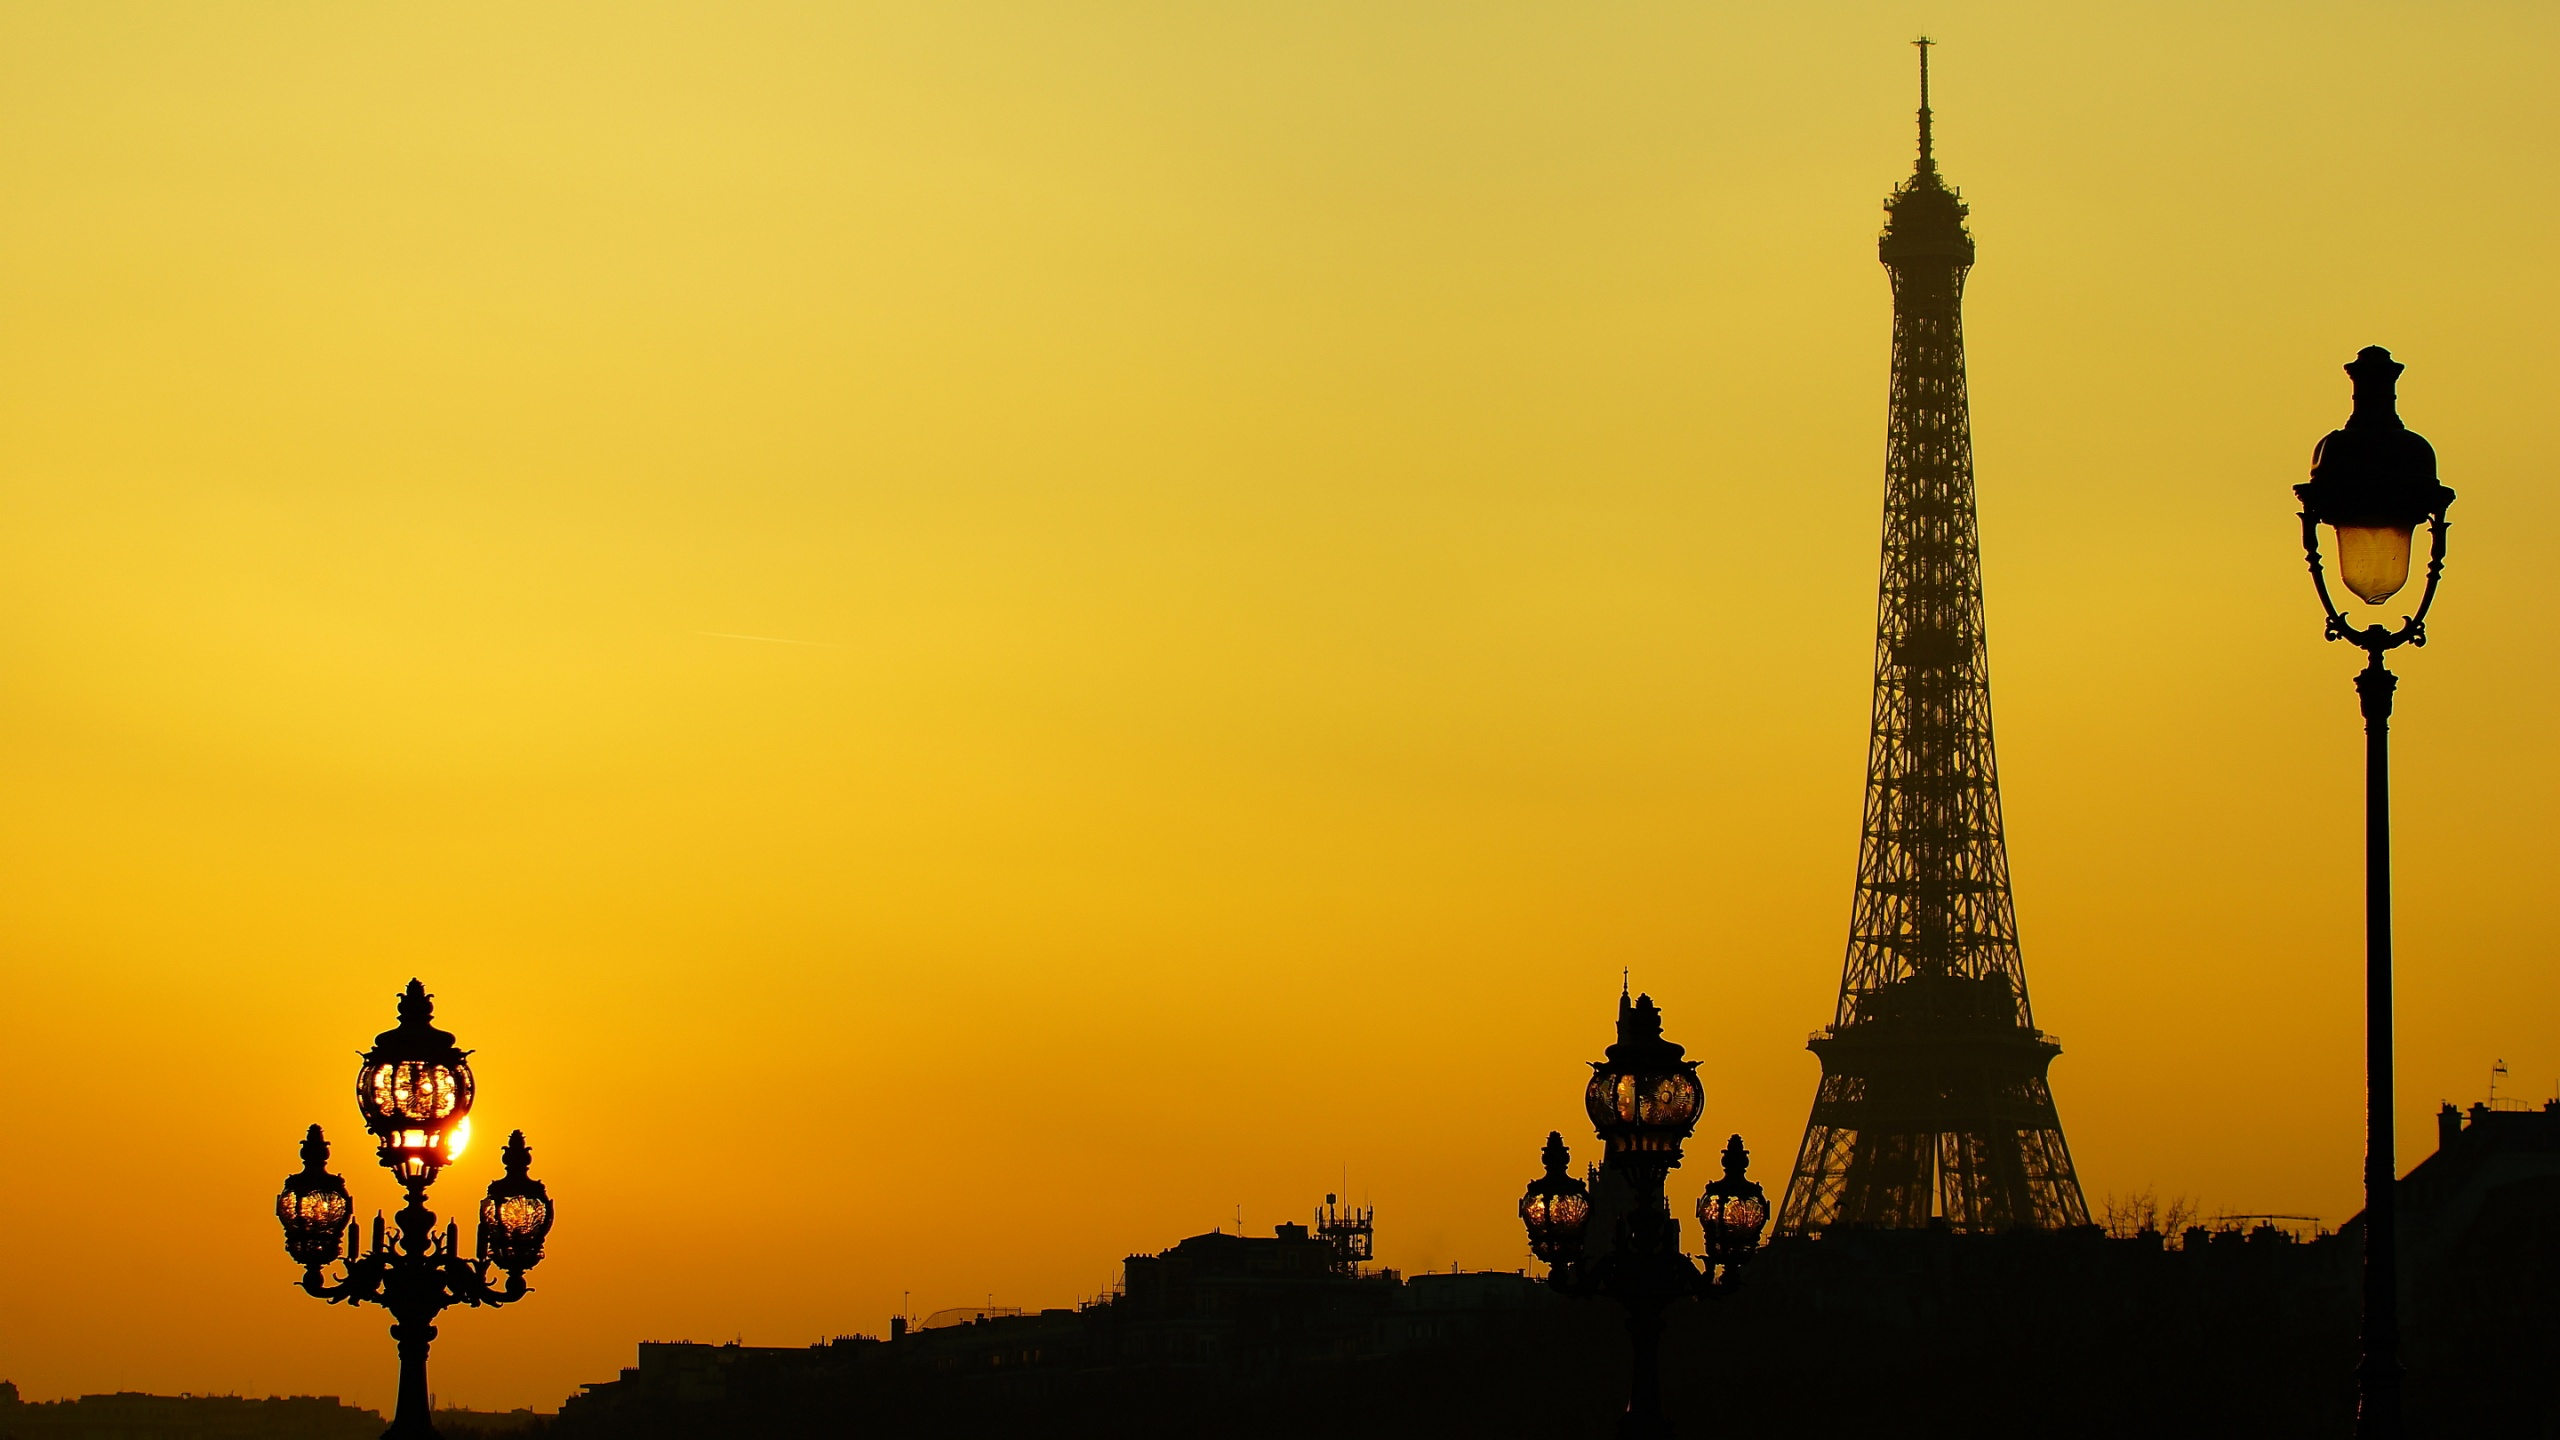 Paris wallpapers best wallpapers for Parigi wallpaper